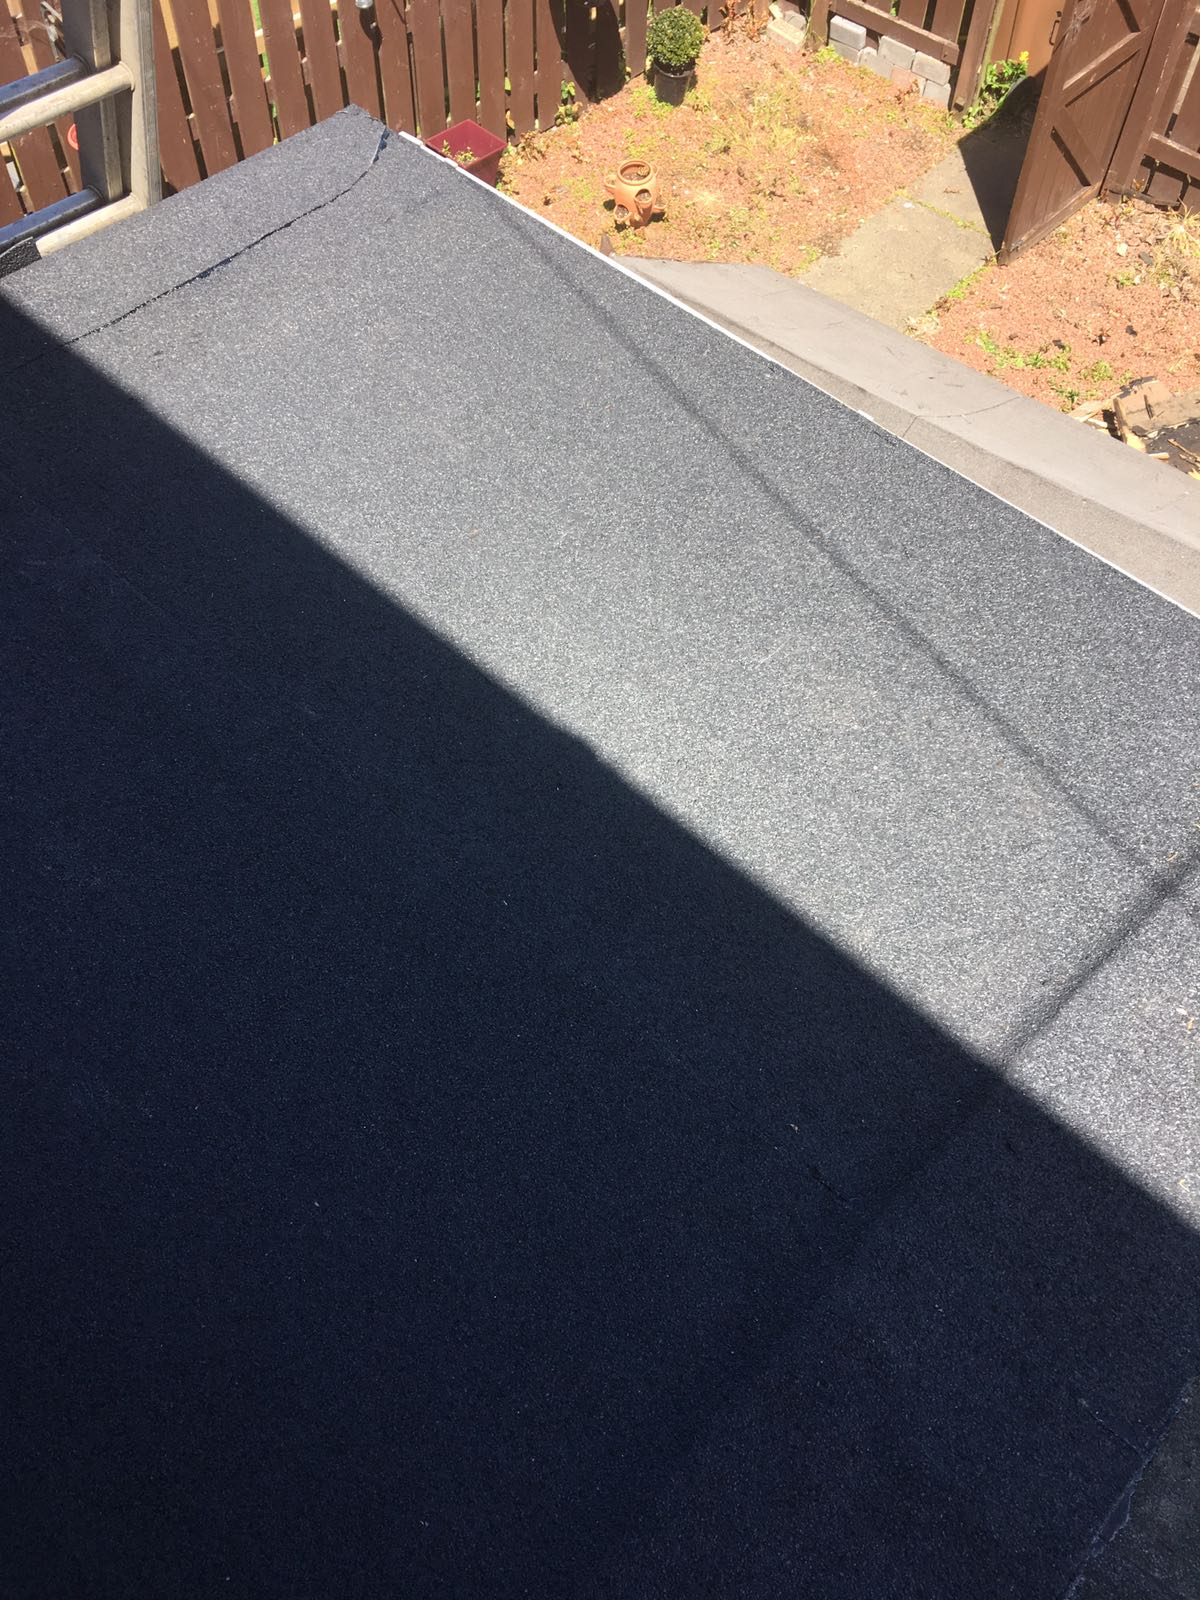 Fife Roofing | Fife Roofers | Felt